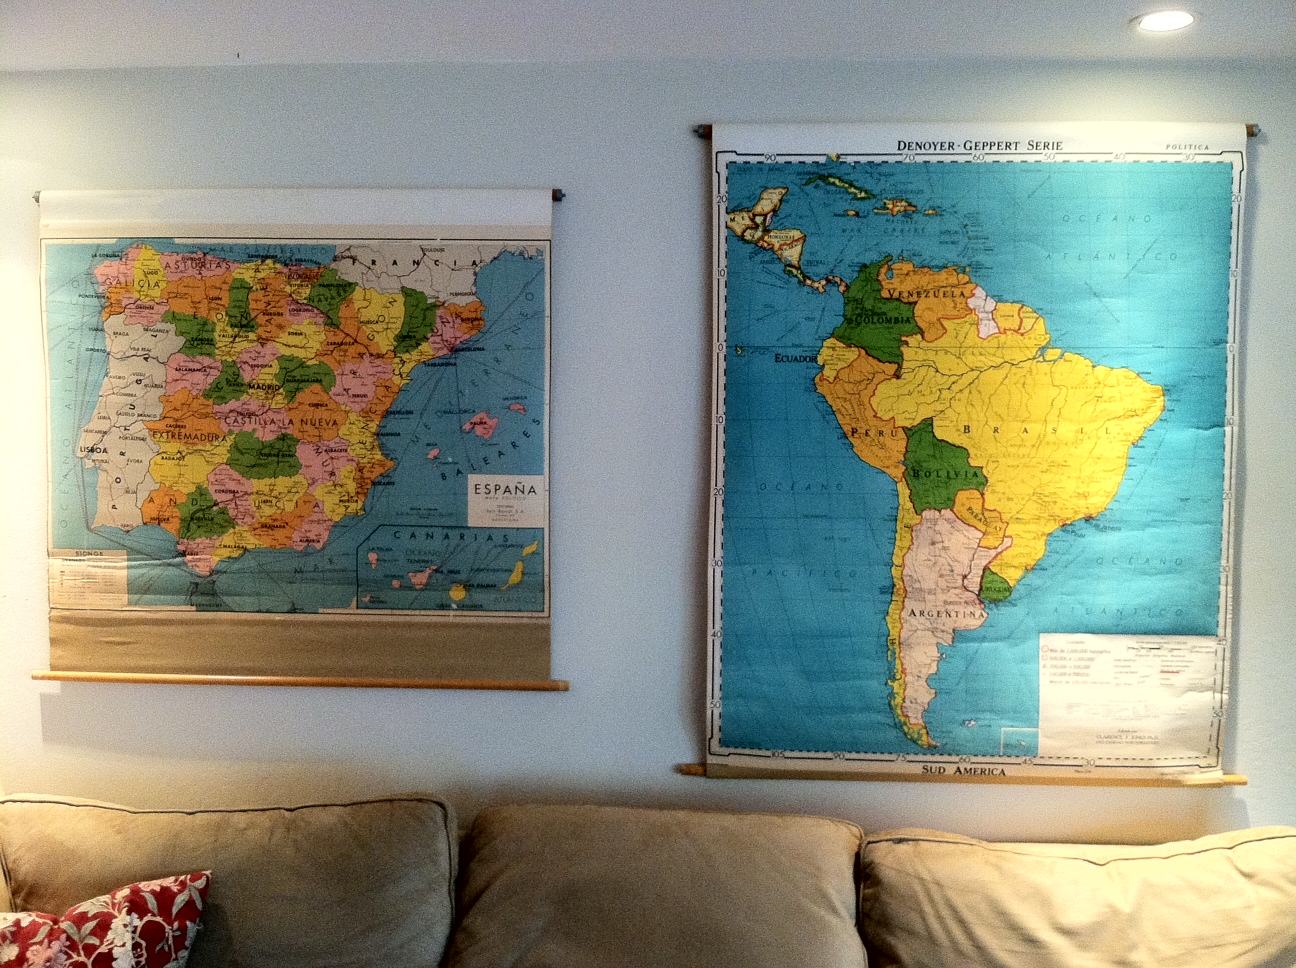 Tamerlane\'s Thoughts: Old school maps